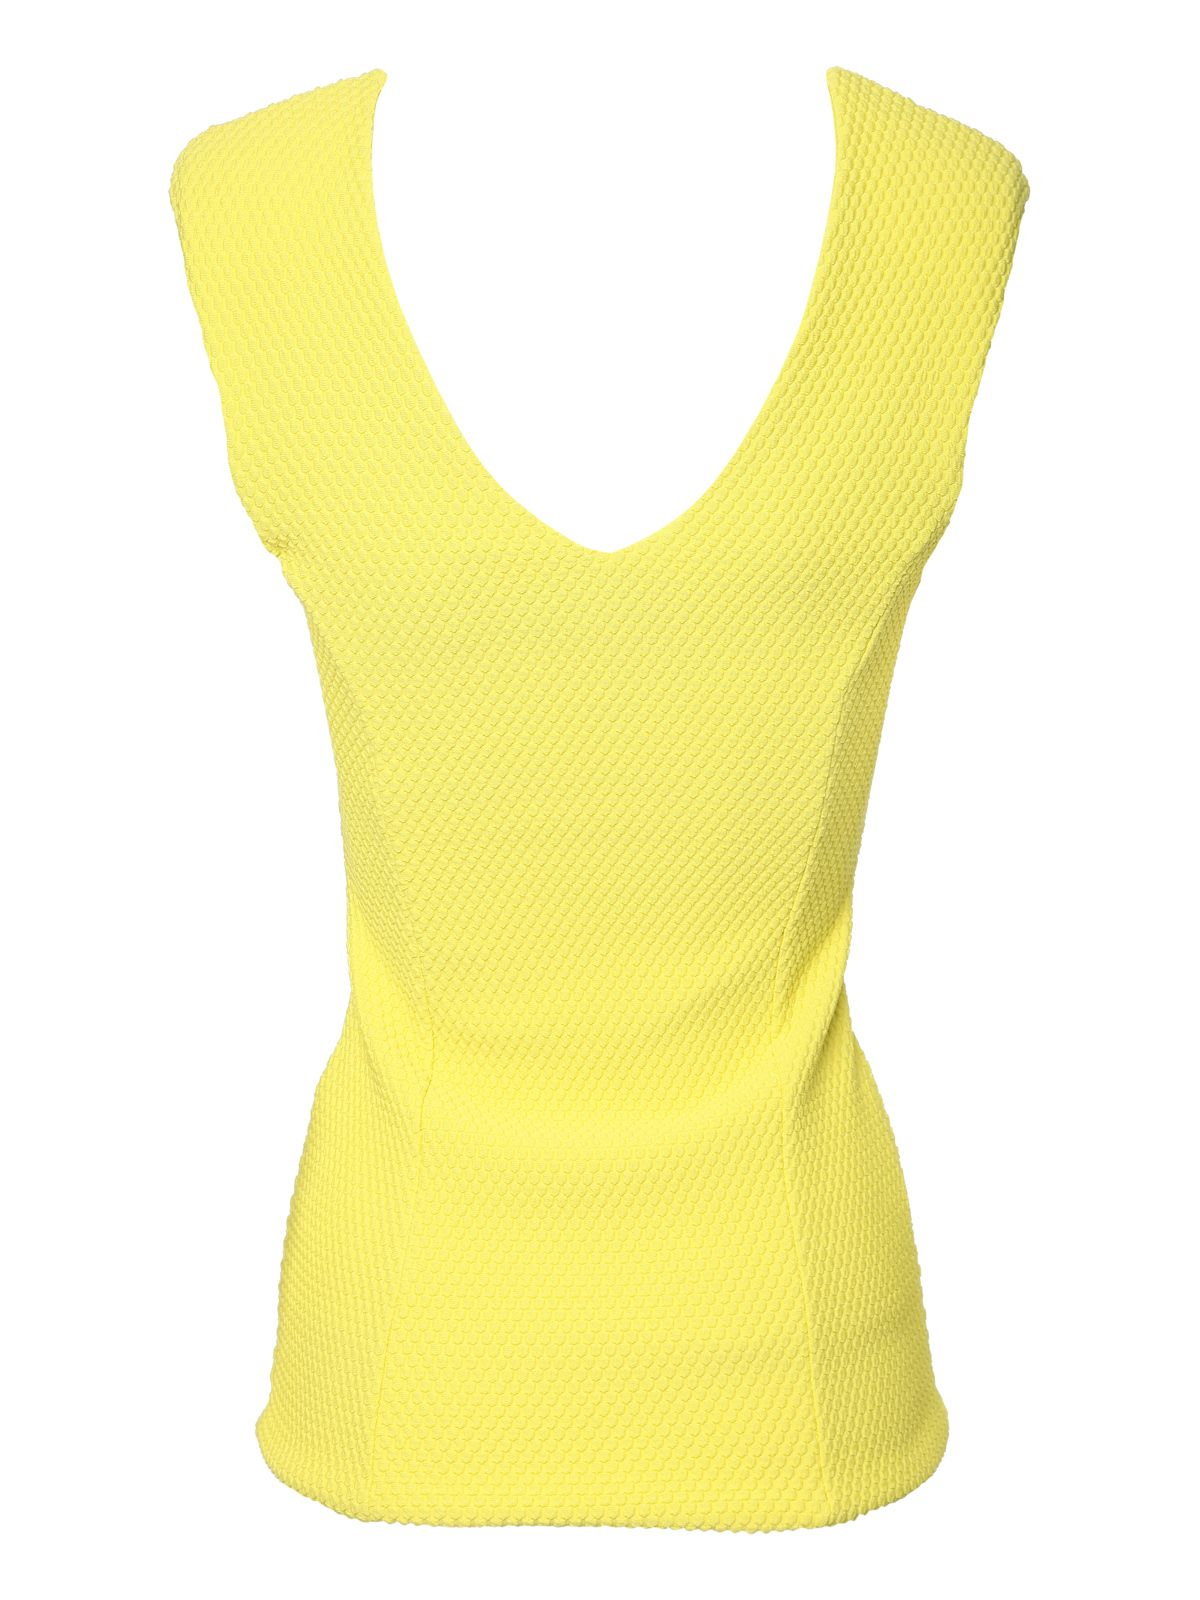 Textured sleeveless vest top